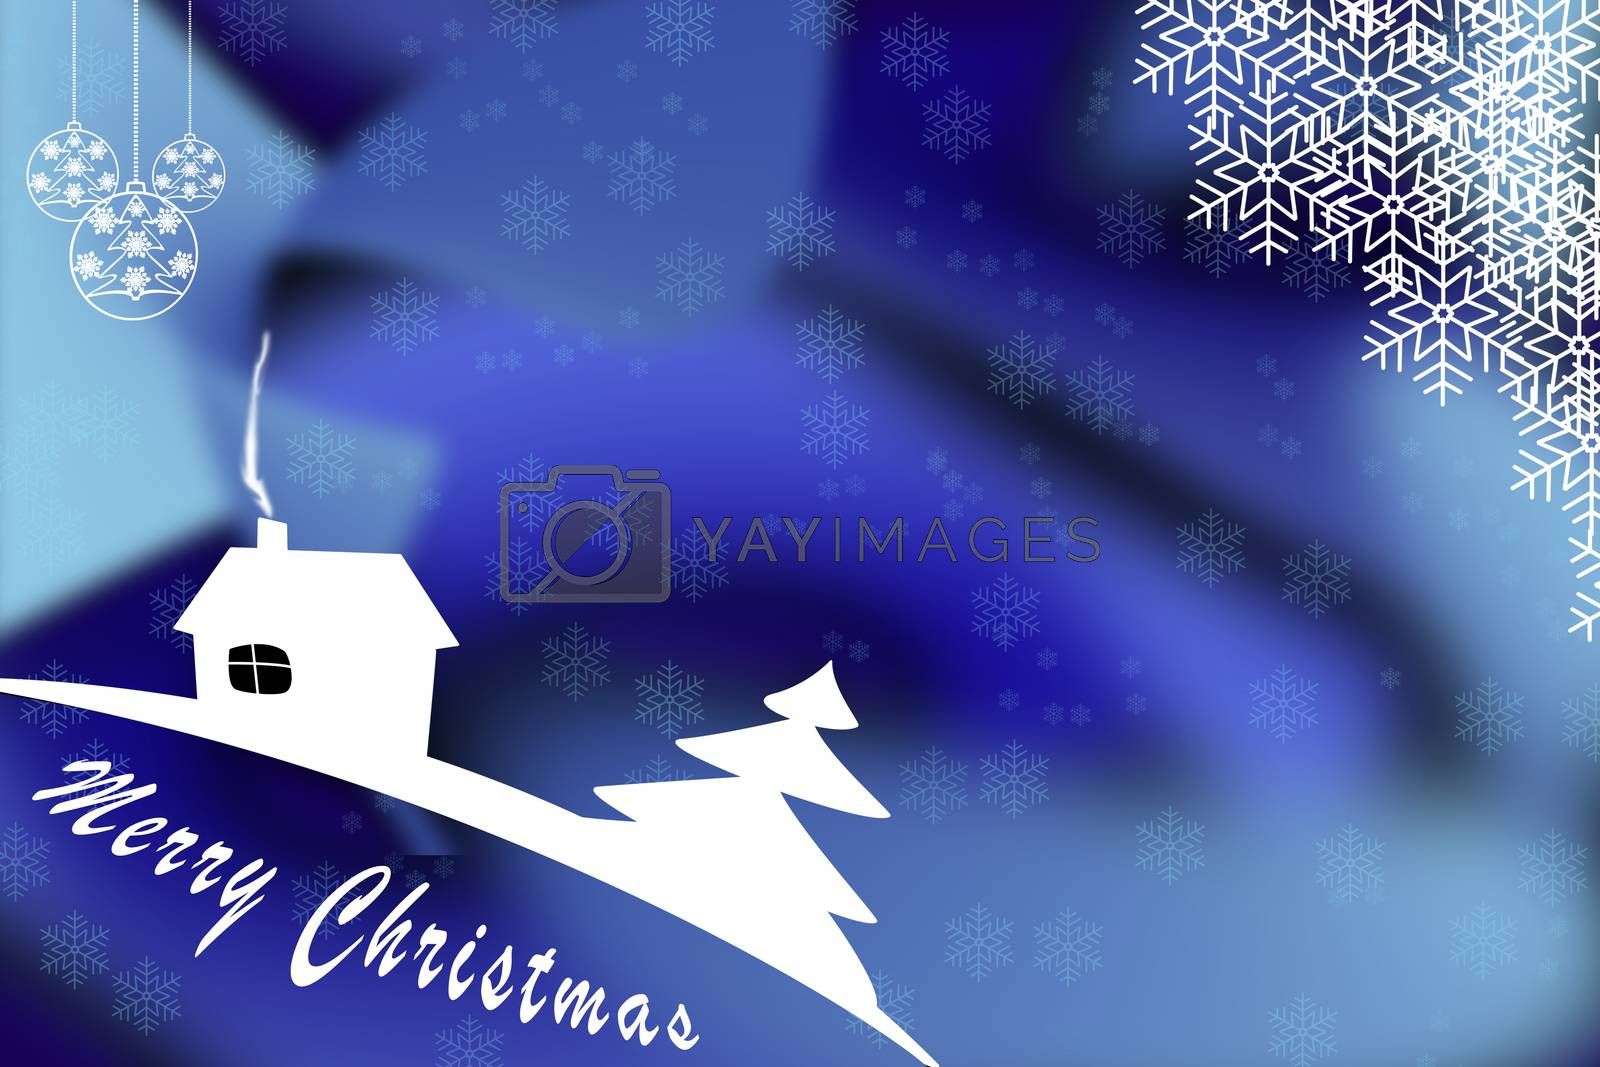 Illustration. Christmas greetings template on blue background with Christmas balls and snowflakes